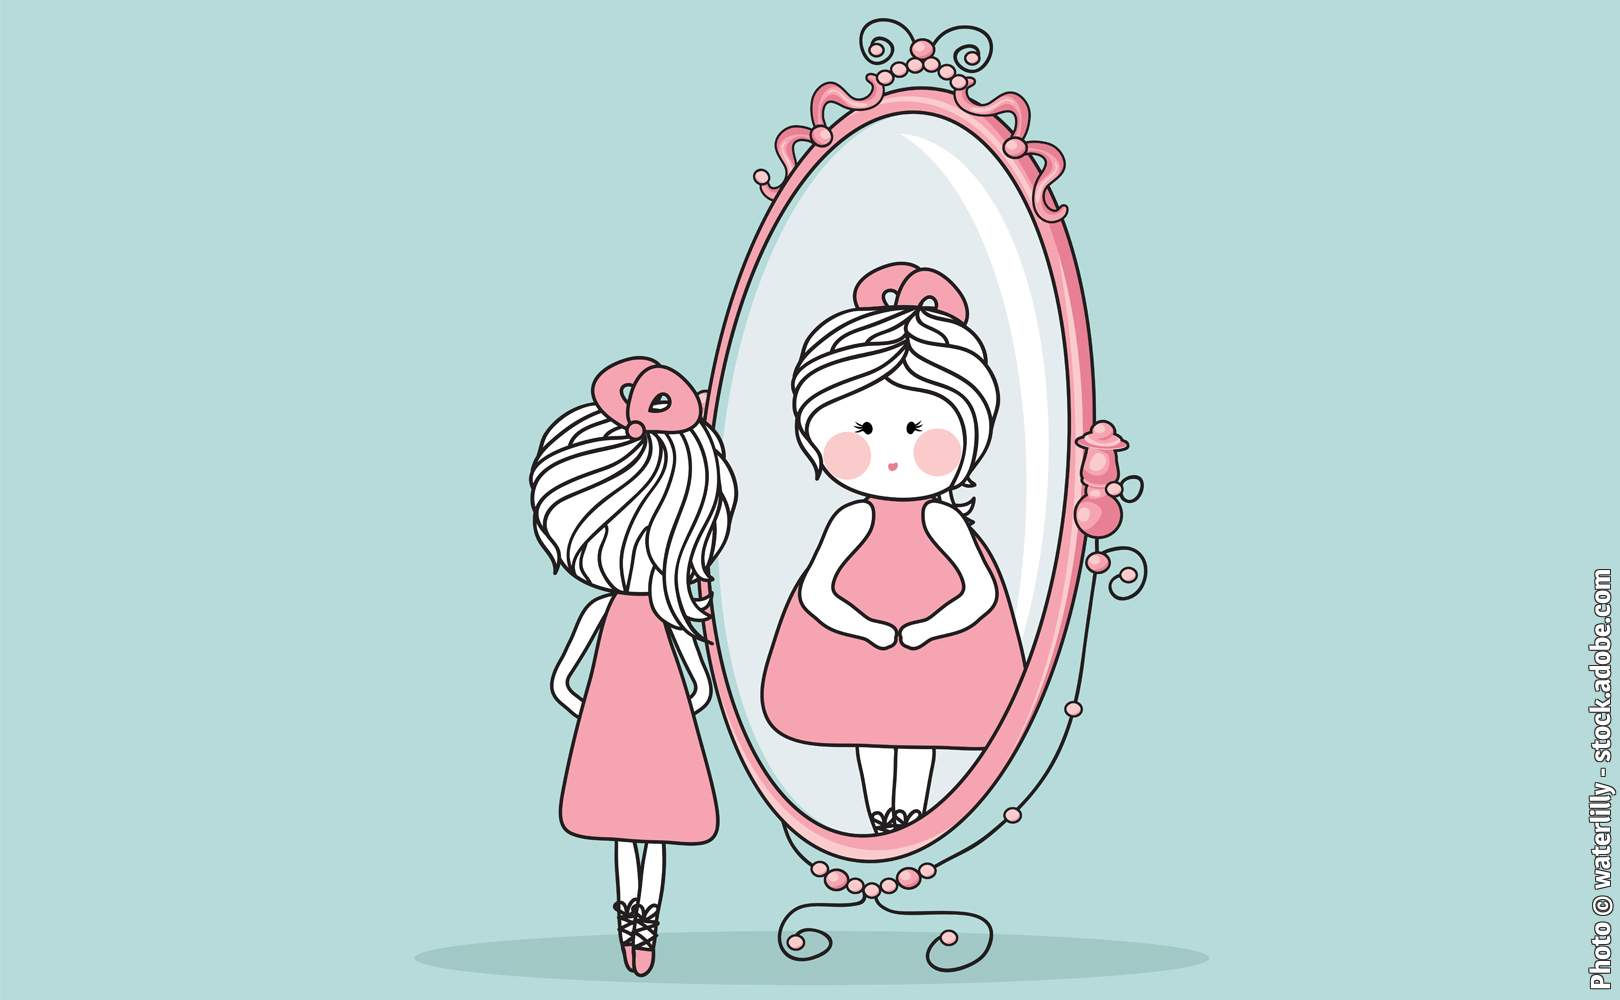 bulimia case In many cases, trauma can be a trigger for an eating disorder  the intense  pressure of the media, marked the beginning of the princess' struggle with  bulimia.